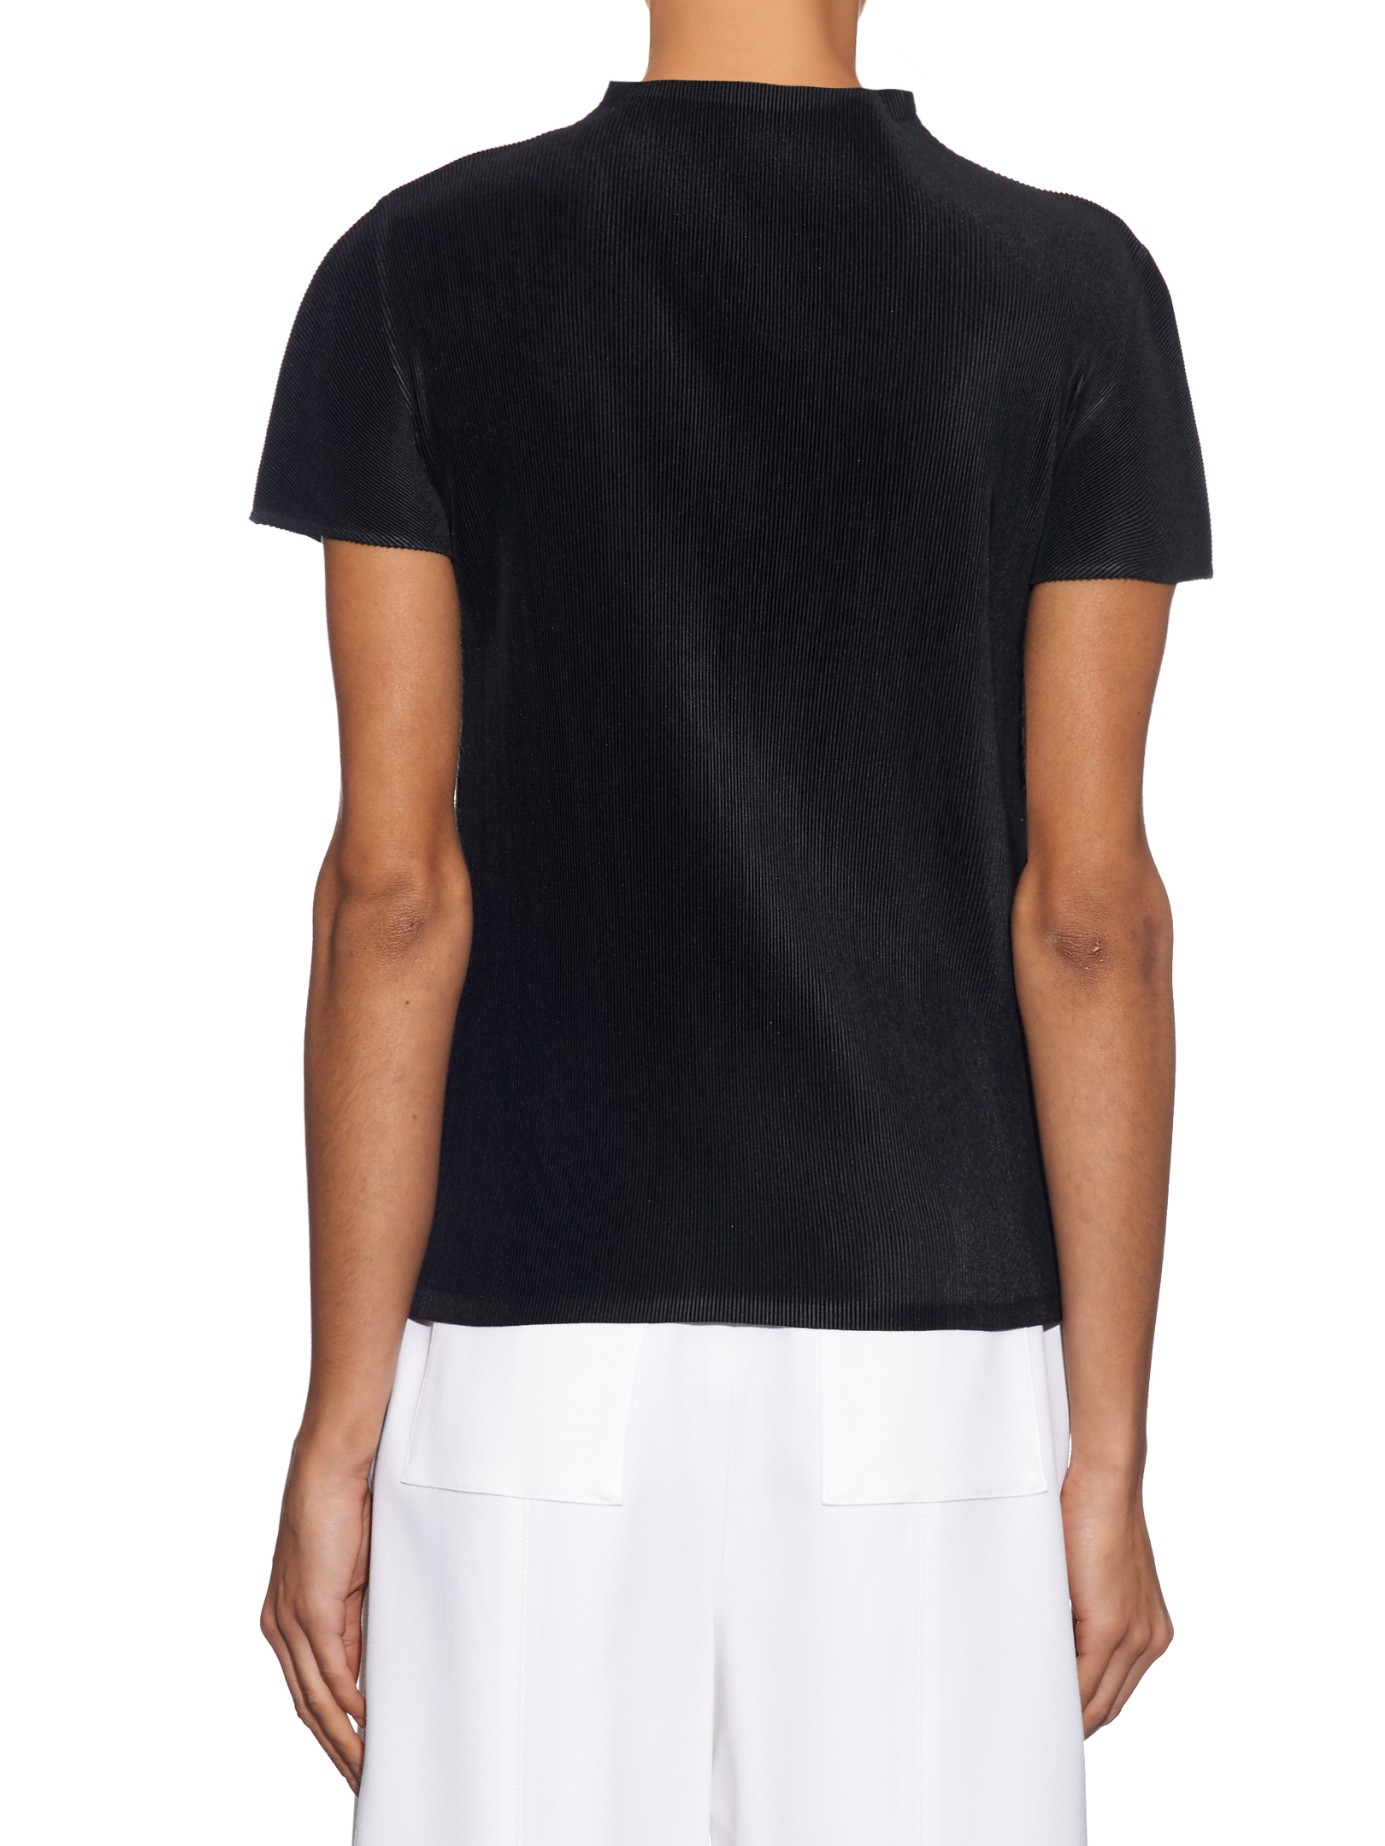 Free Shipping Sale Online Black Pleated T-Shirt Pleats Please Issey Miyake Cheap Sale Low Price Fee Shipping LzomBEL